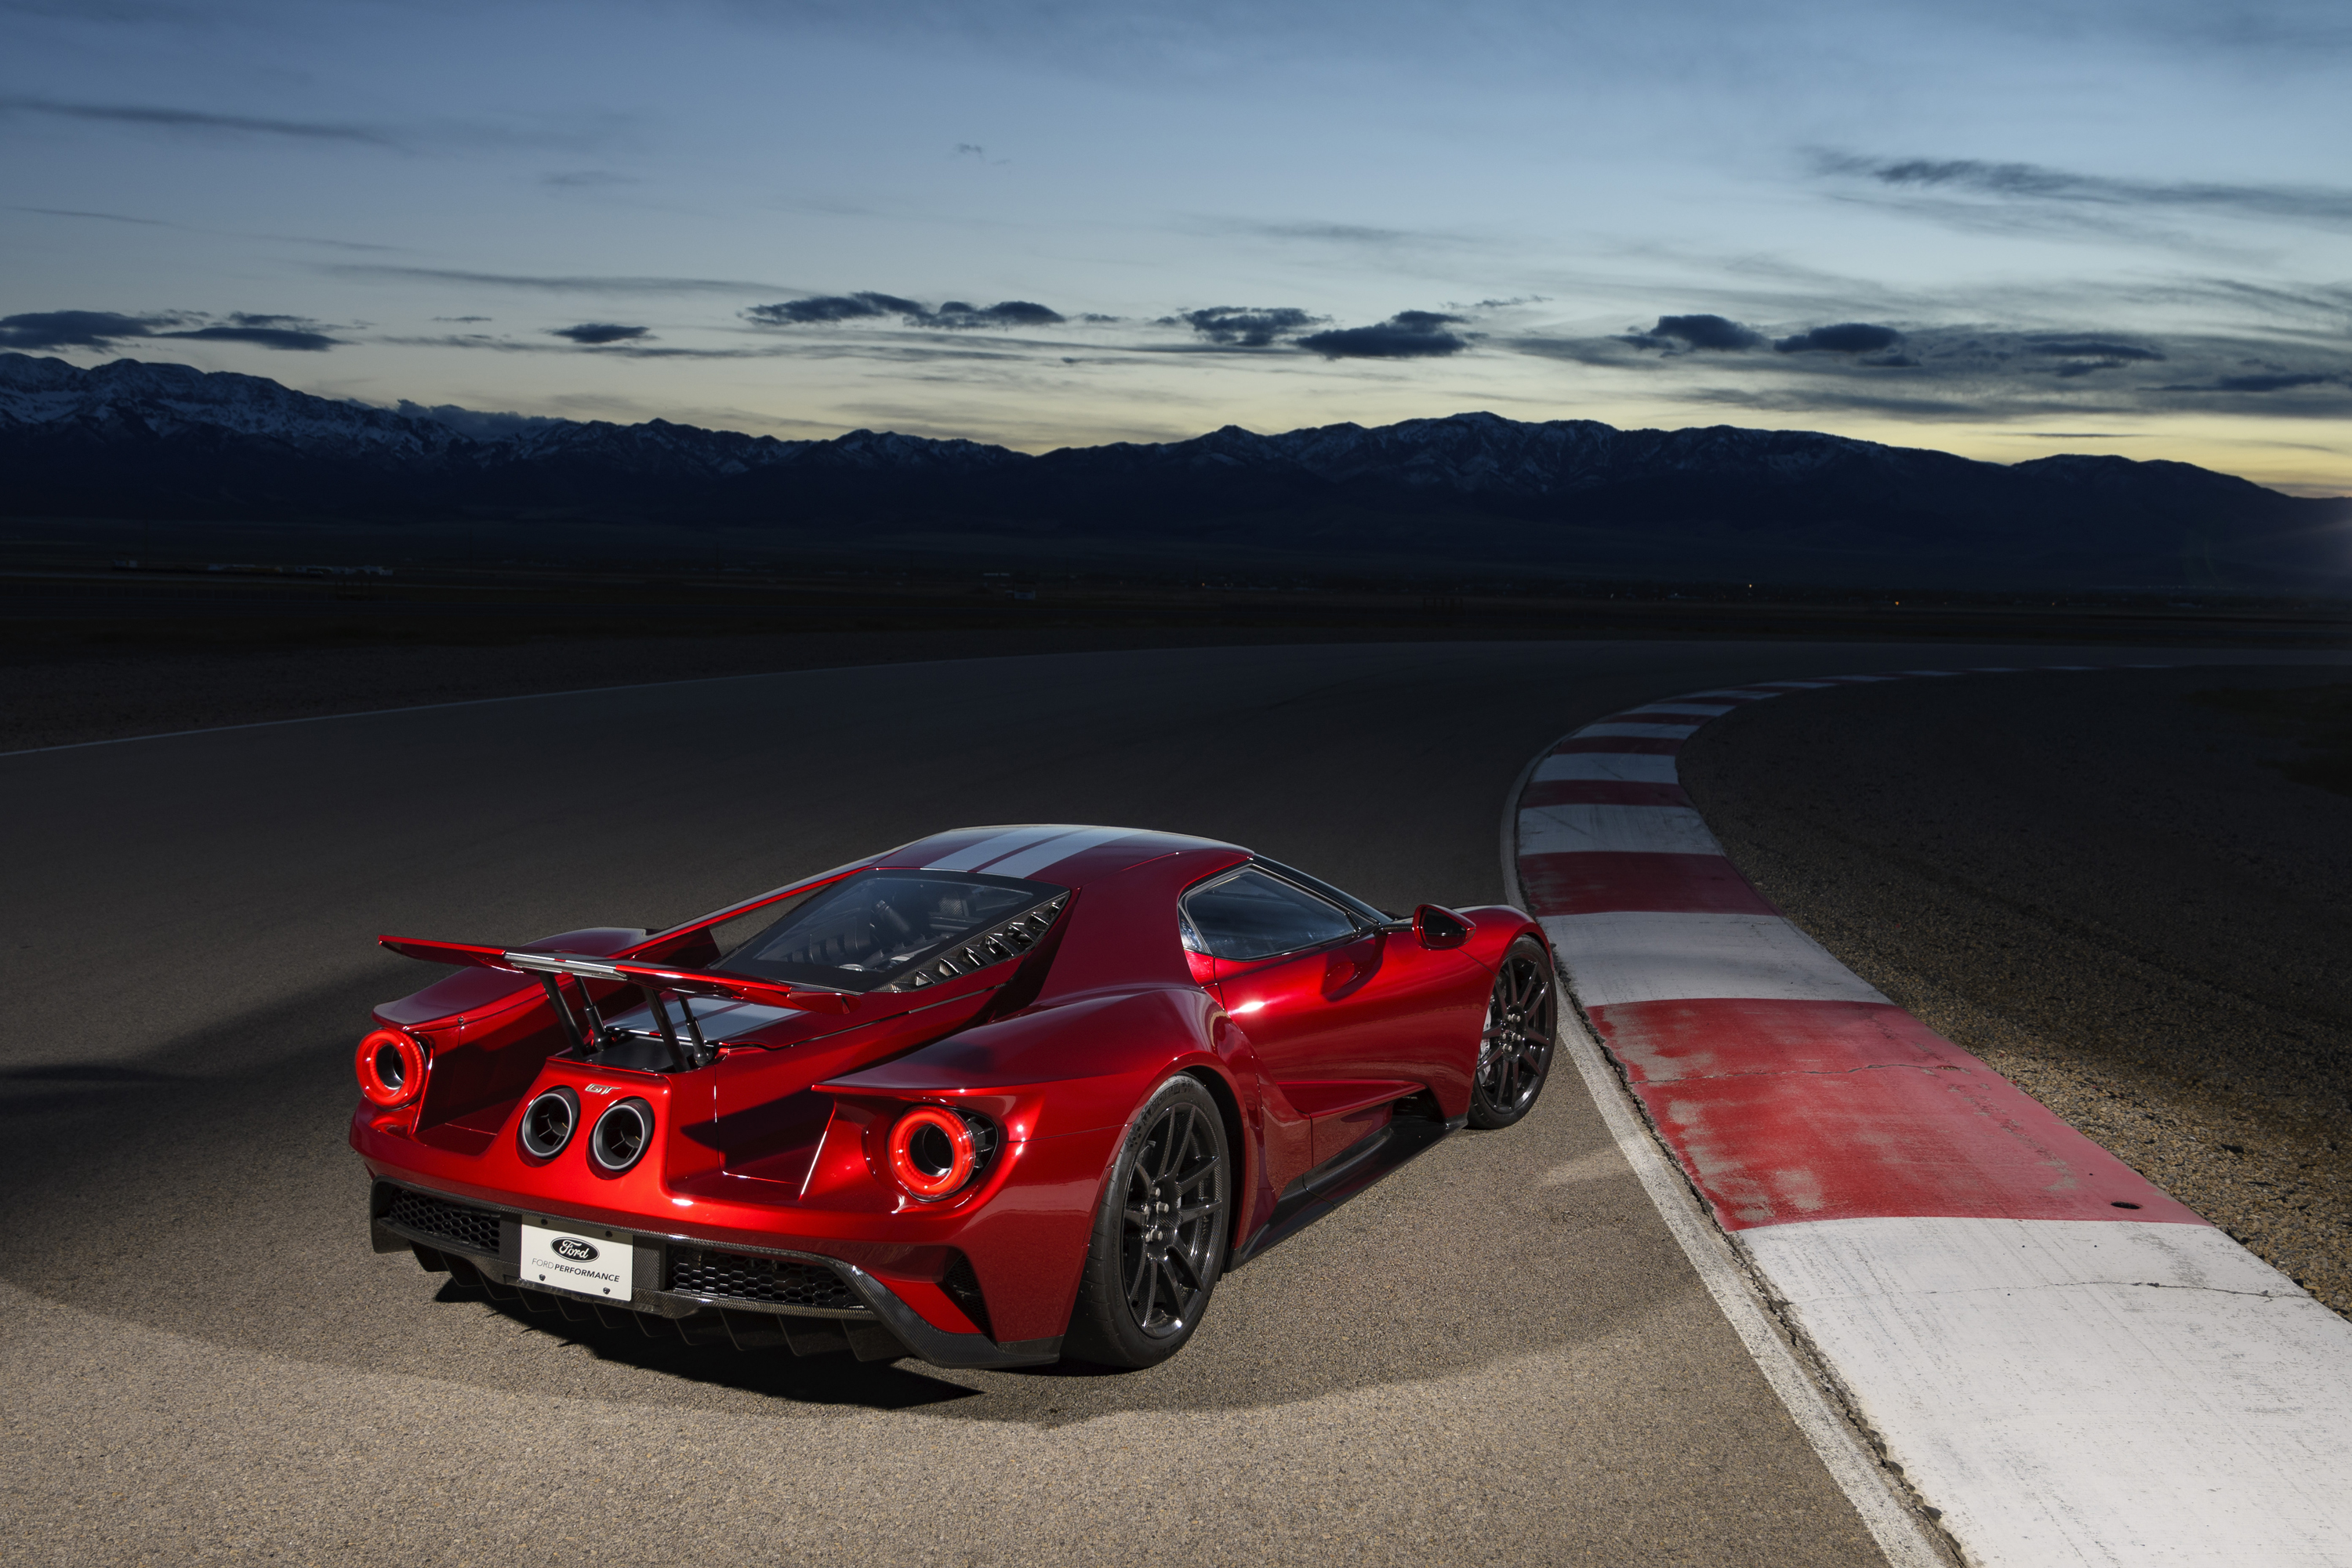 New Ford GT Liquid Red Silver On Track Dusk